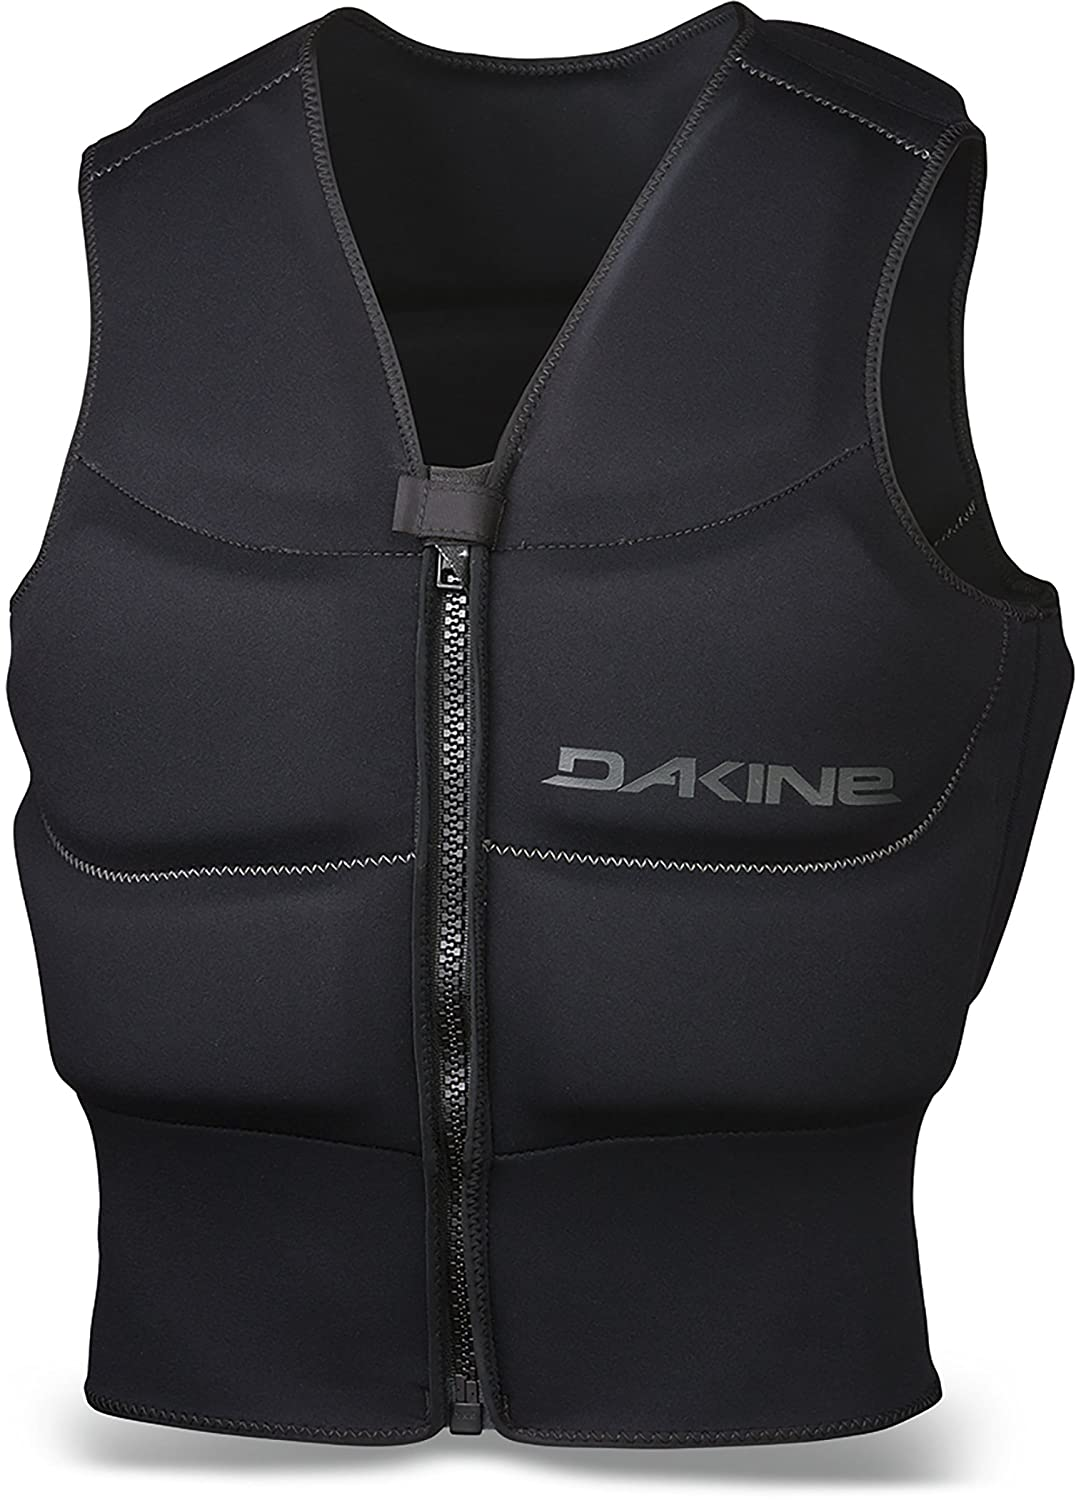 Dakine Surface Vest B00RGQWX4M Medium|ブラック ブラック Medium